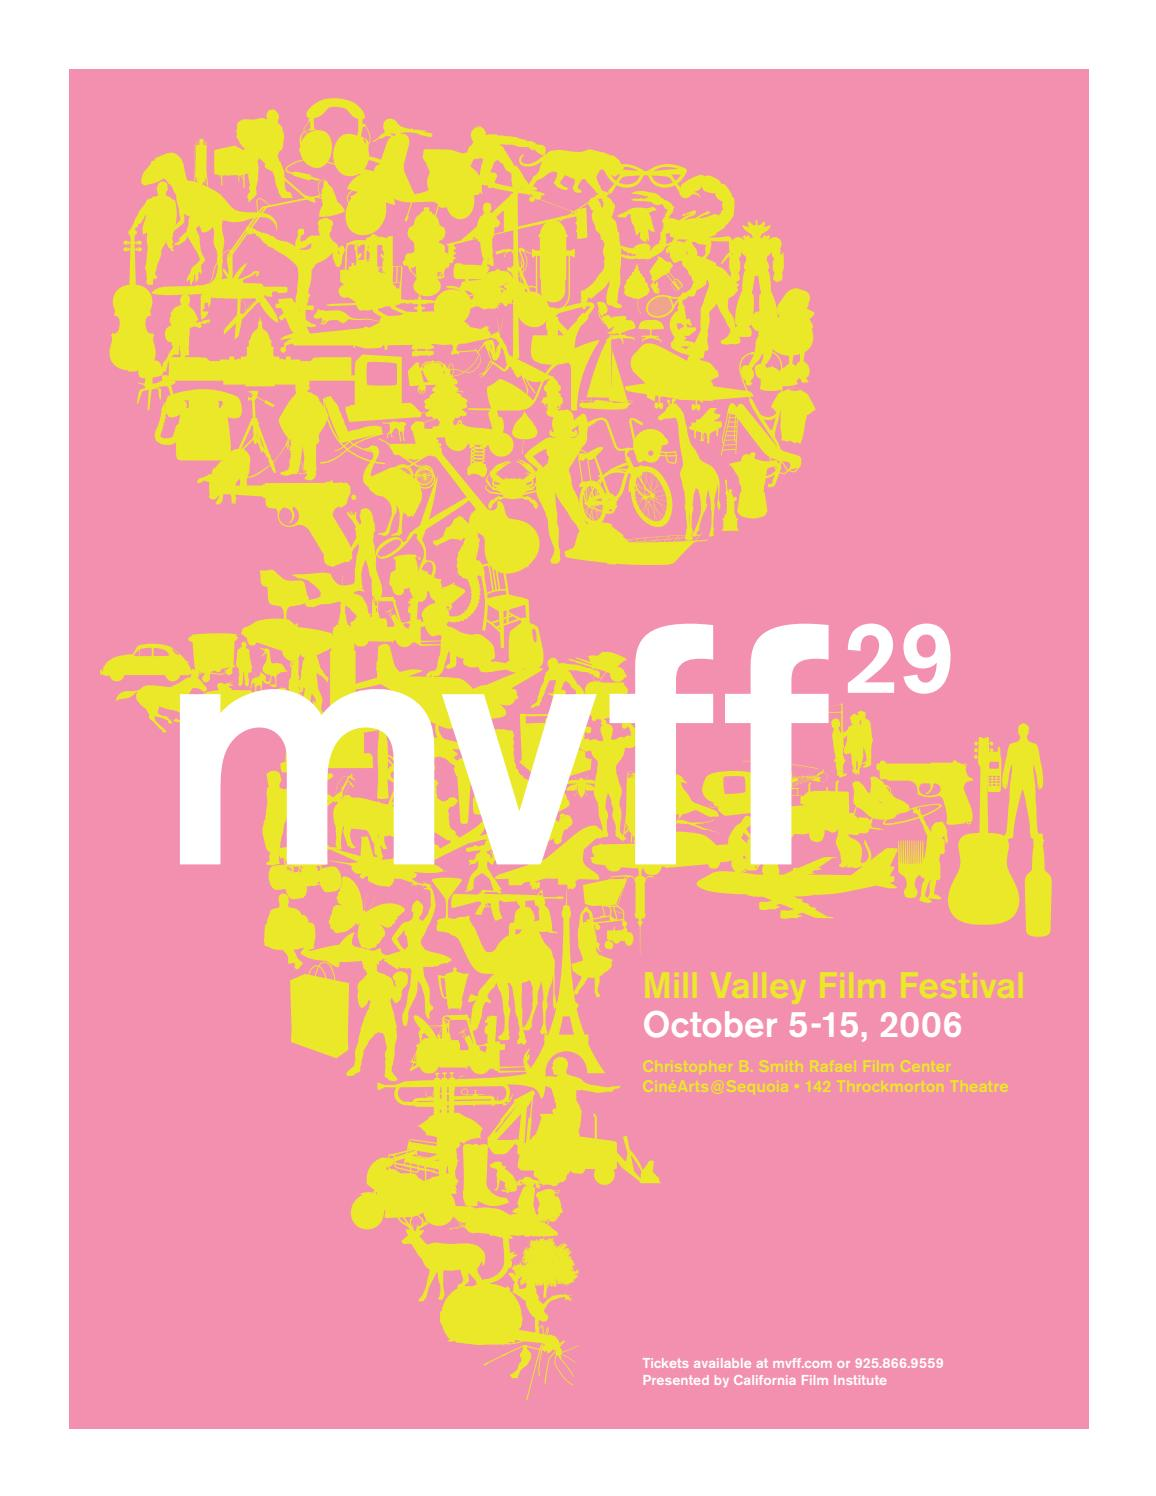 MVFF29 Souvenir Guide by MVFF - issuu